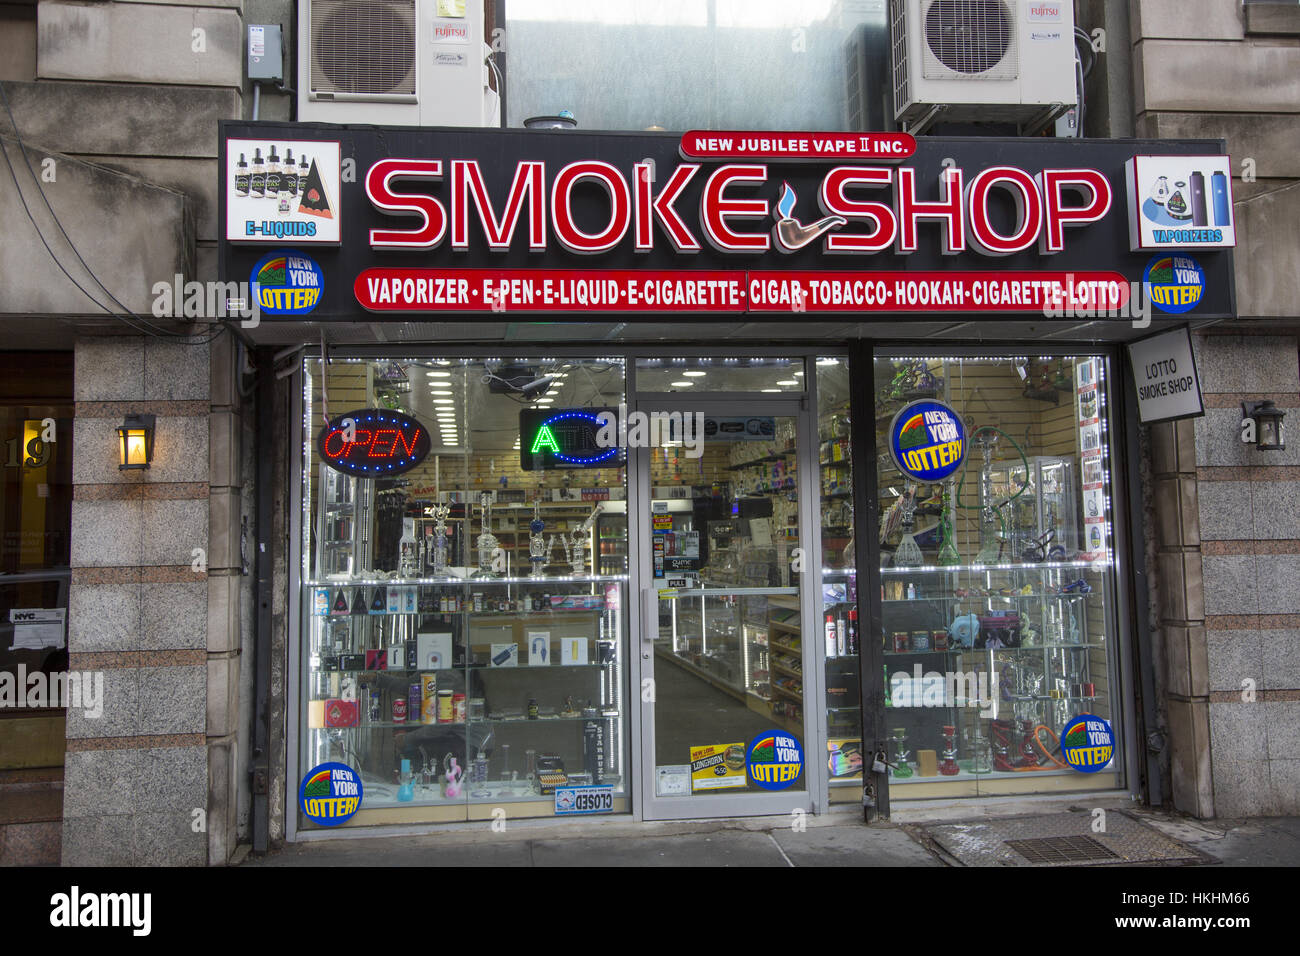 In spite of the dangers of nicotine and cigarettes various forms of smoking are still popular. Smoke Shop, Manhattan, - Stock Image